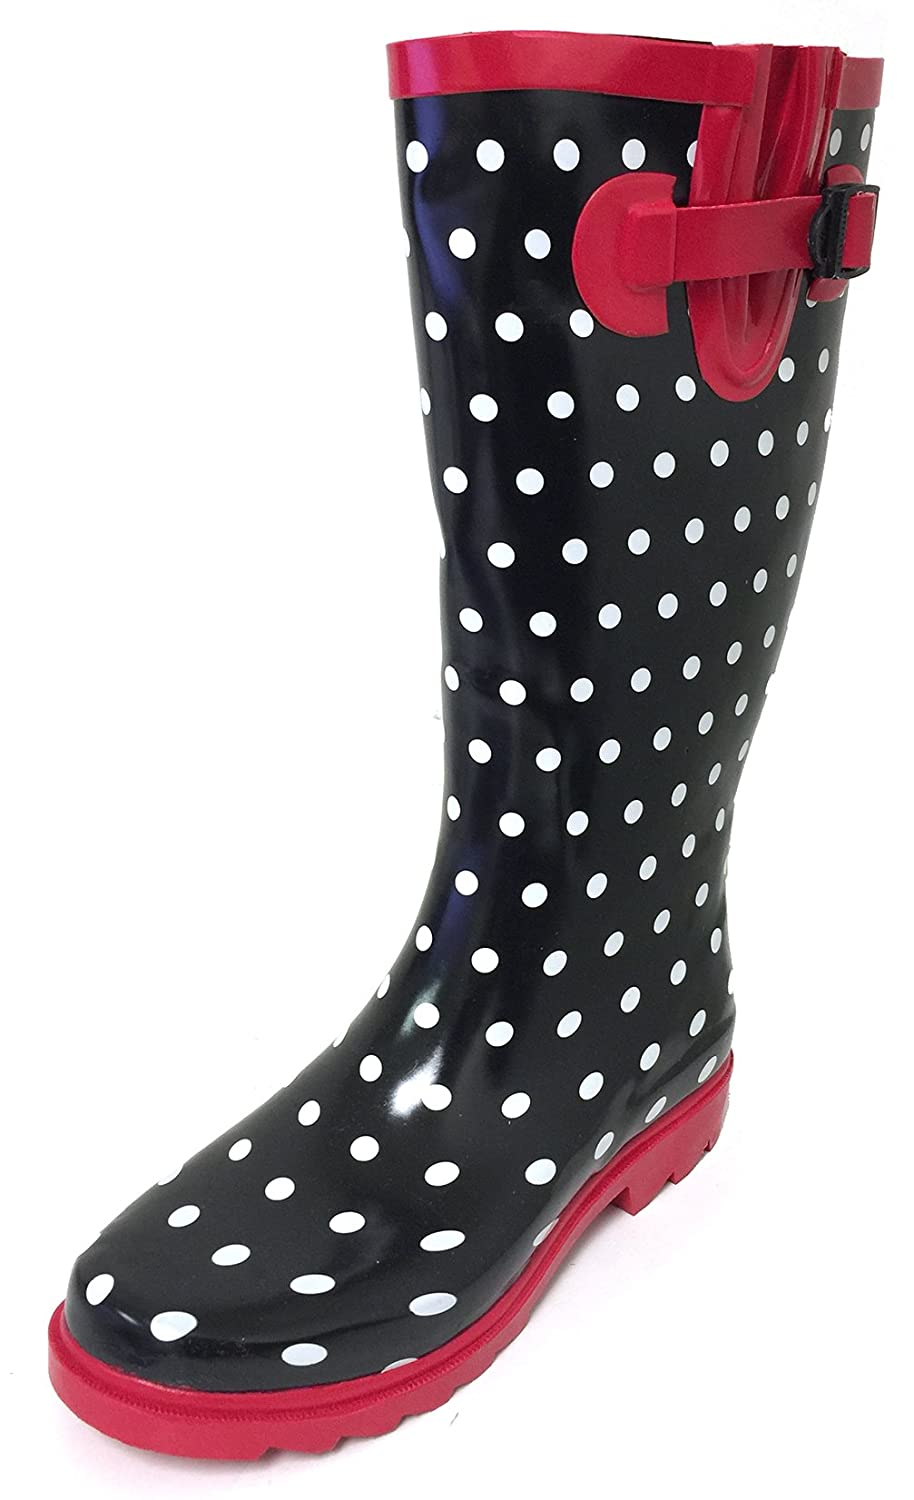 Black Red Polka Dots G4U Women's Rain Boots Multiple Styles color Mid Calf Wellies Buckle Fashion Rubber Knee High Snow shoes